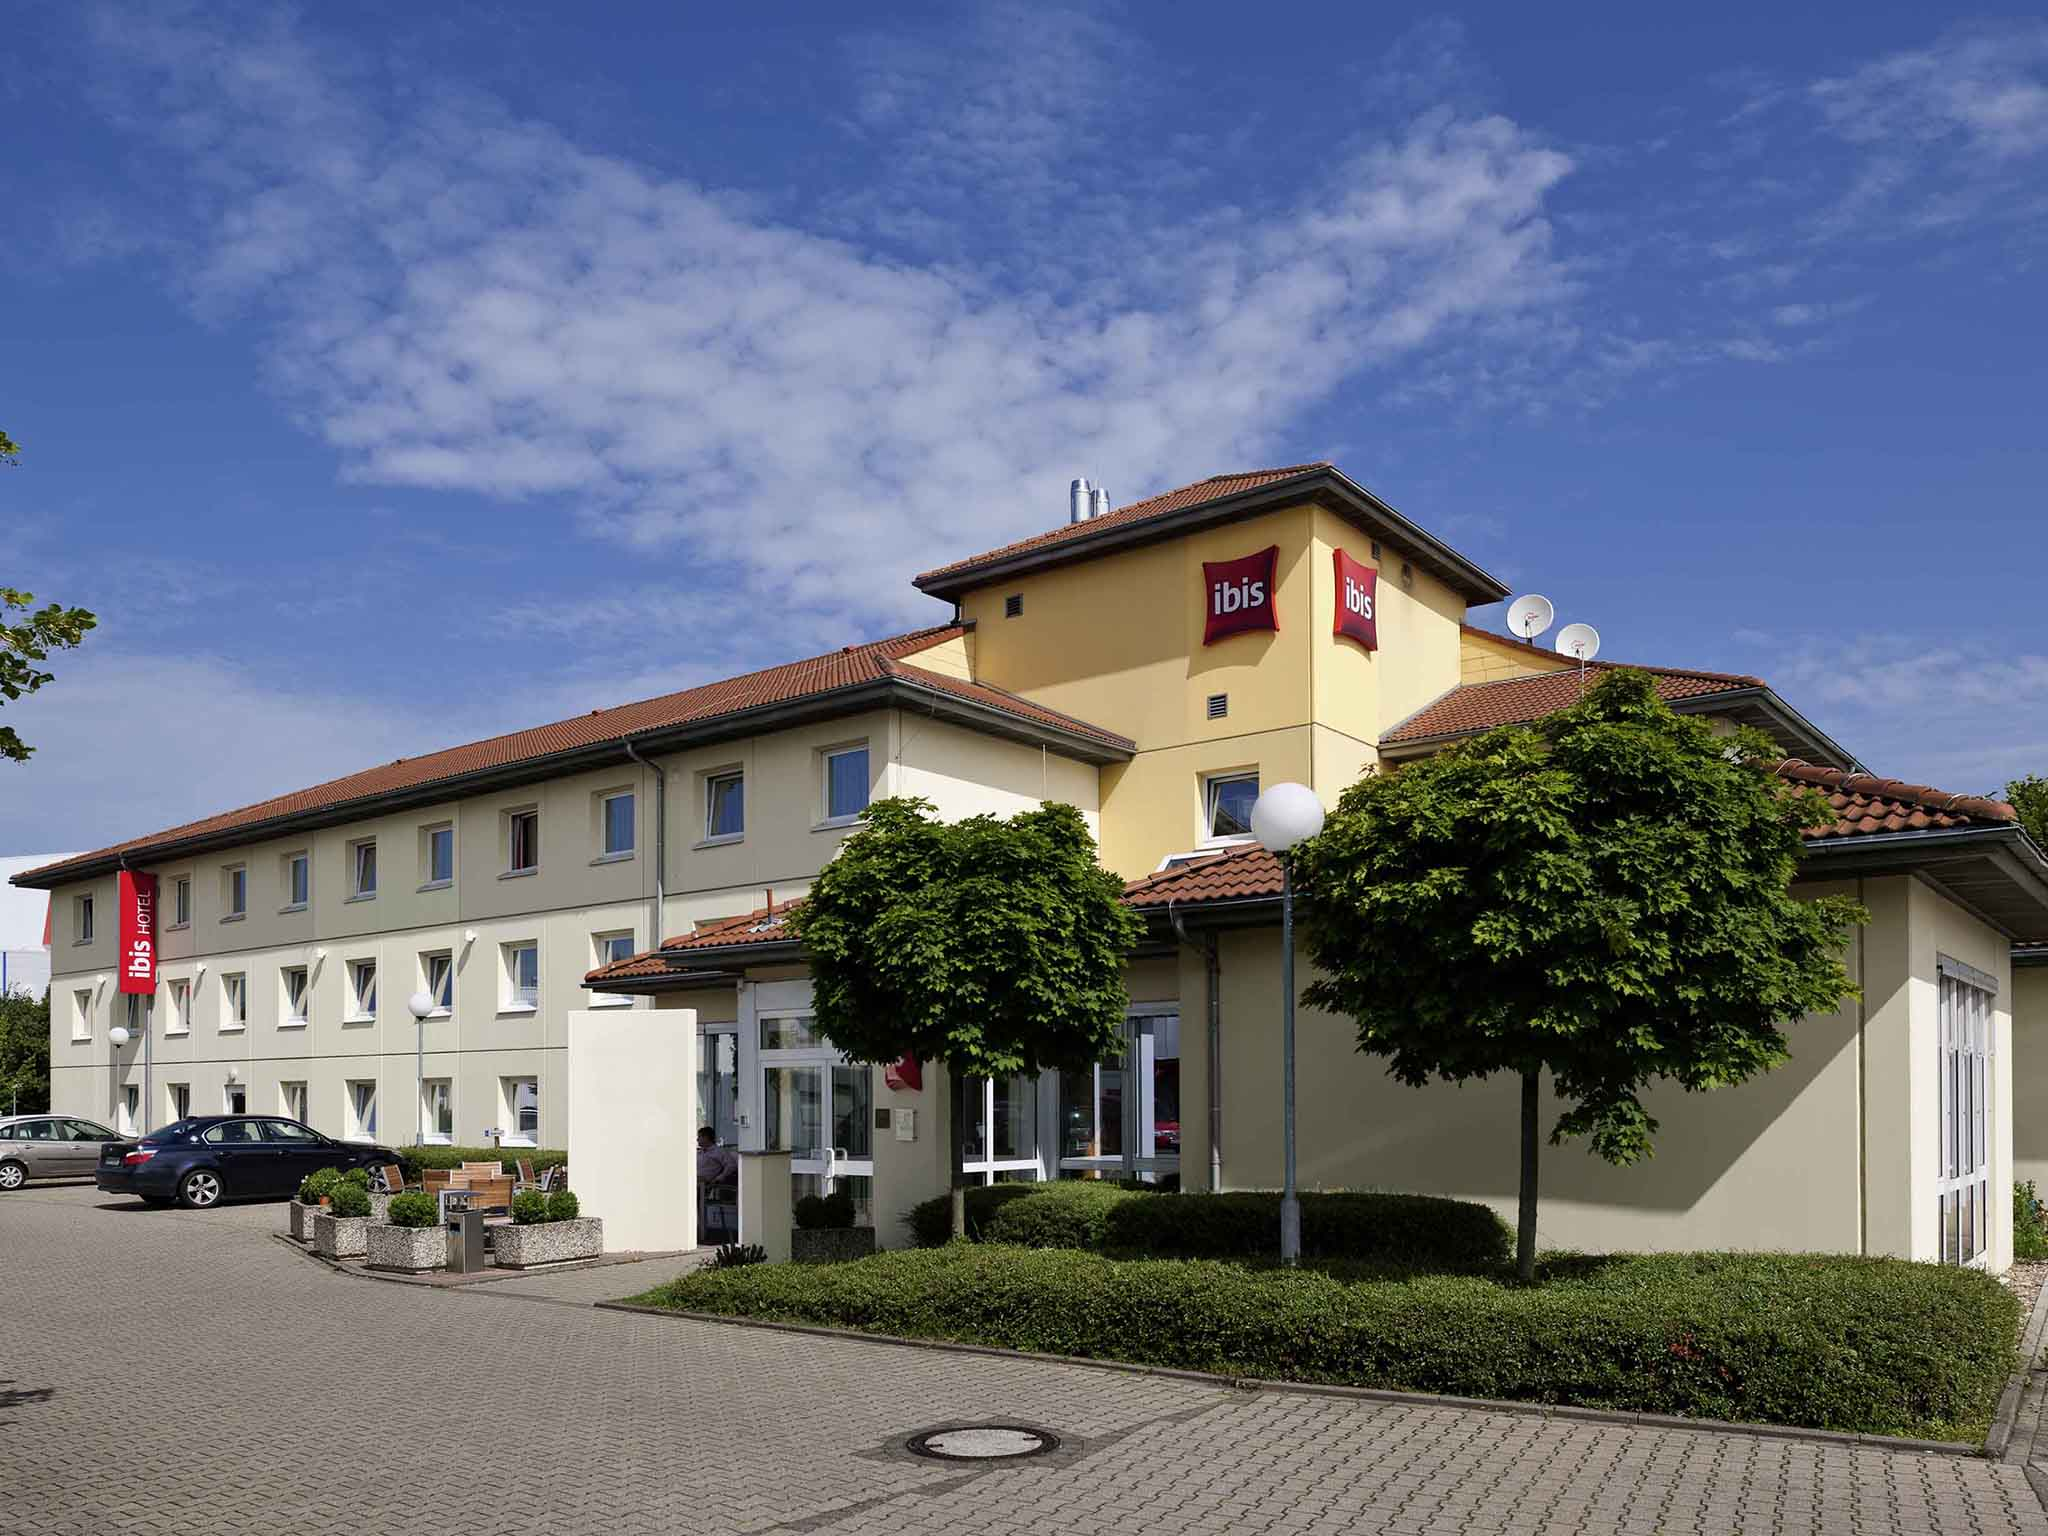 Hotel ibis Cologne Frechen. Book your hotel inCologne now!